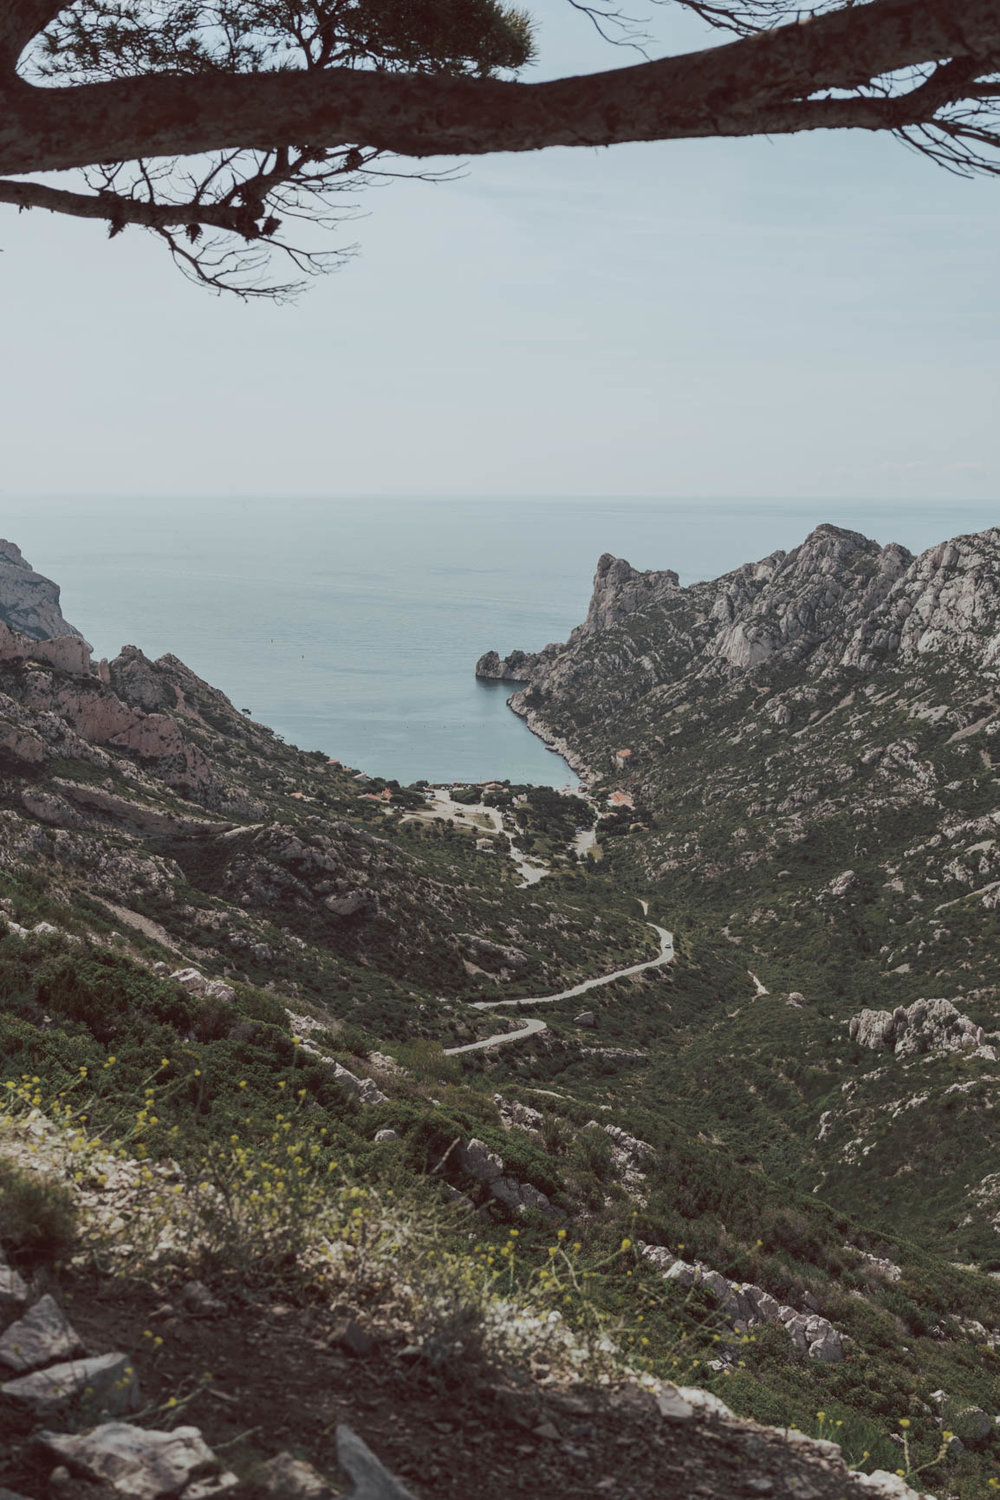 Calanque De Sormiou - South of France itinerary - 10 Days In Provence Road Trip